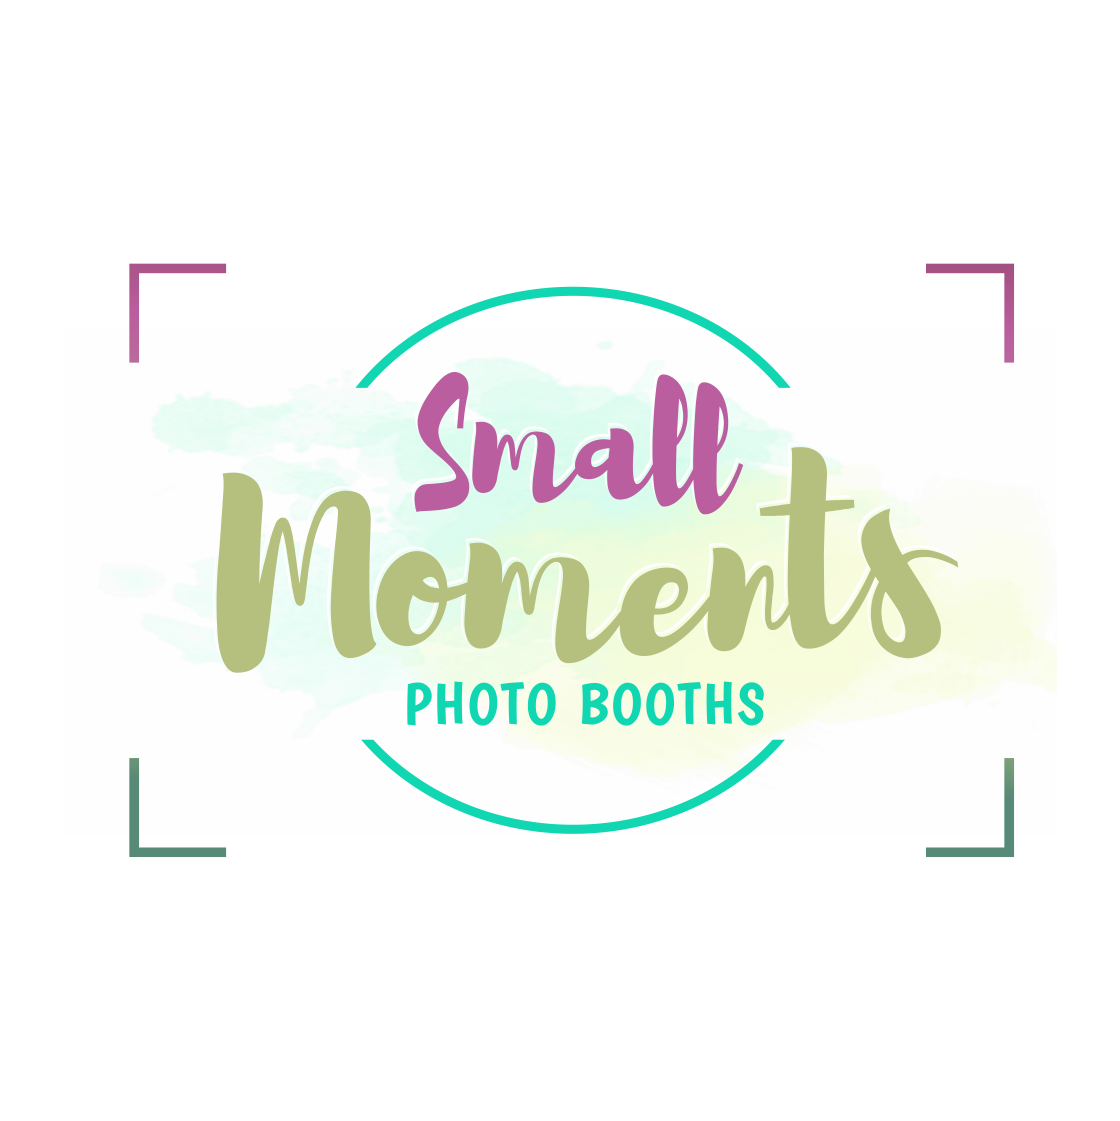 Small Moments Photo Booths